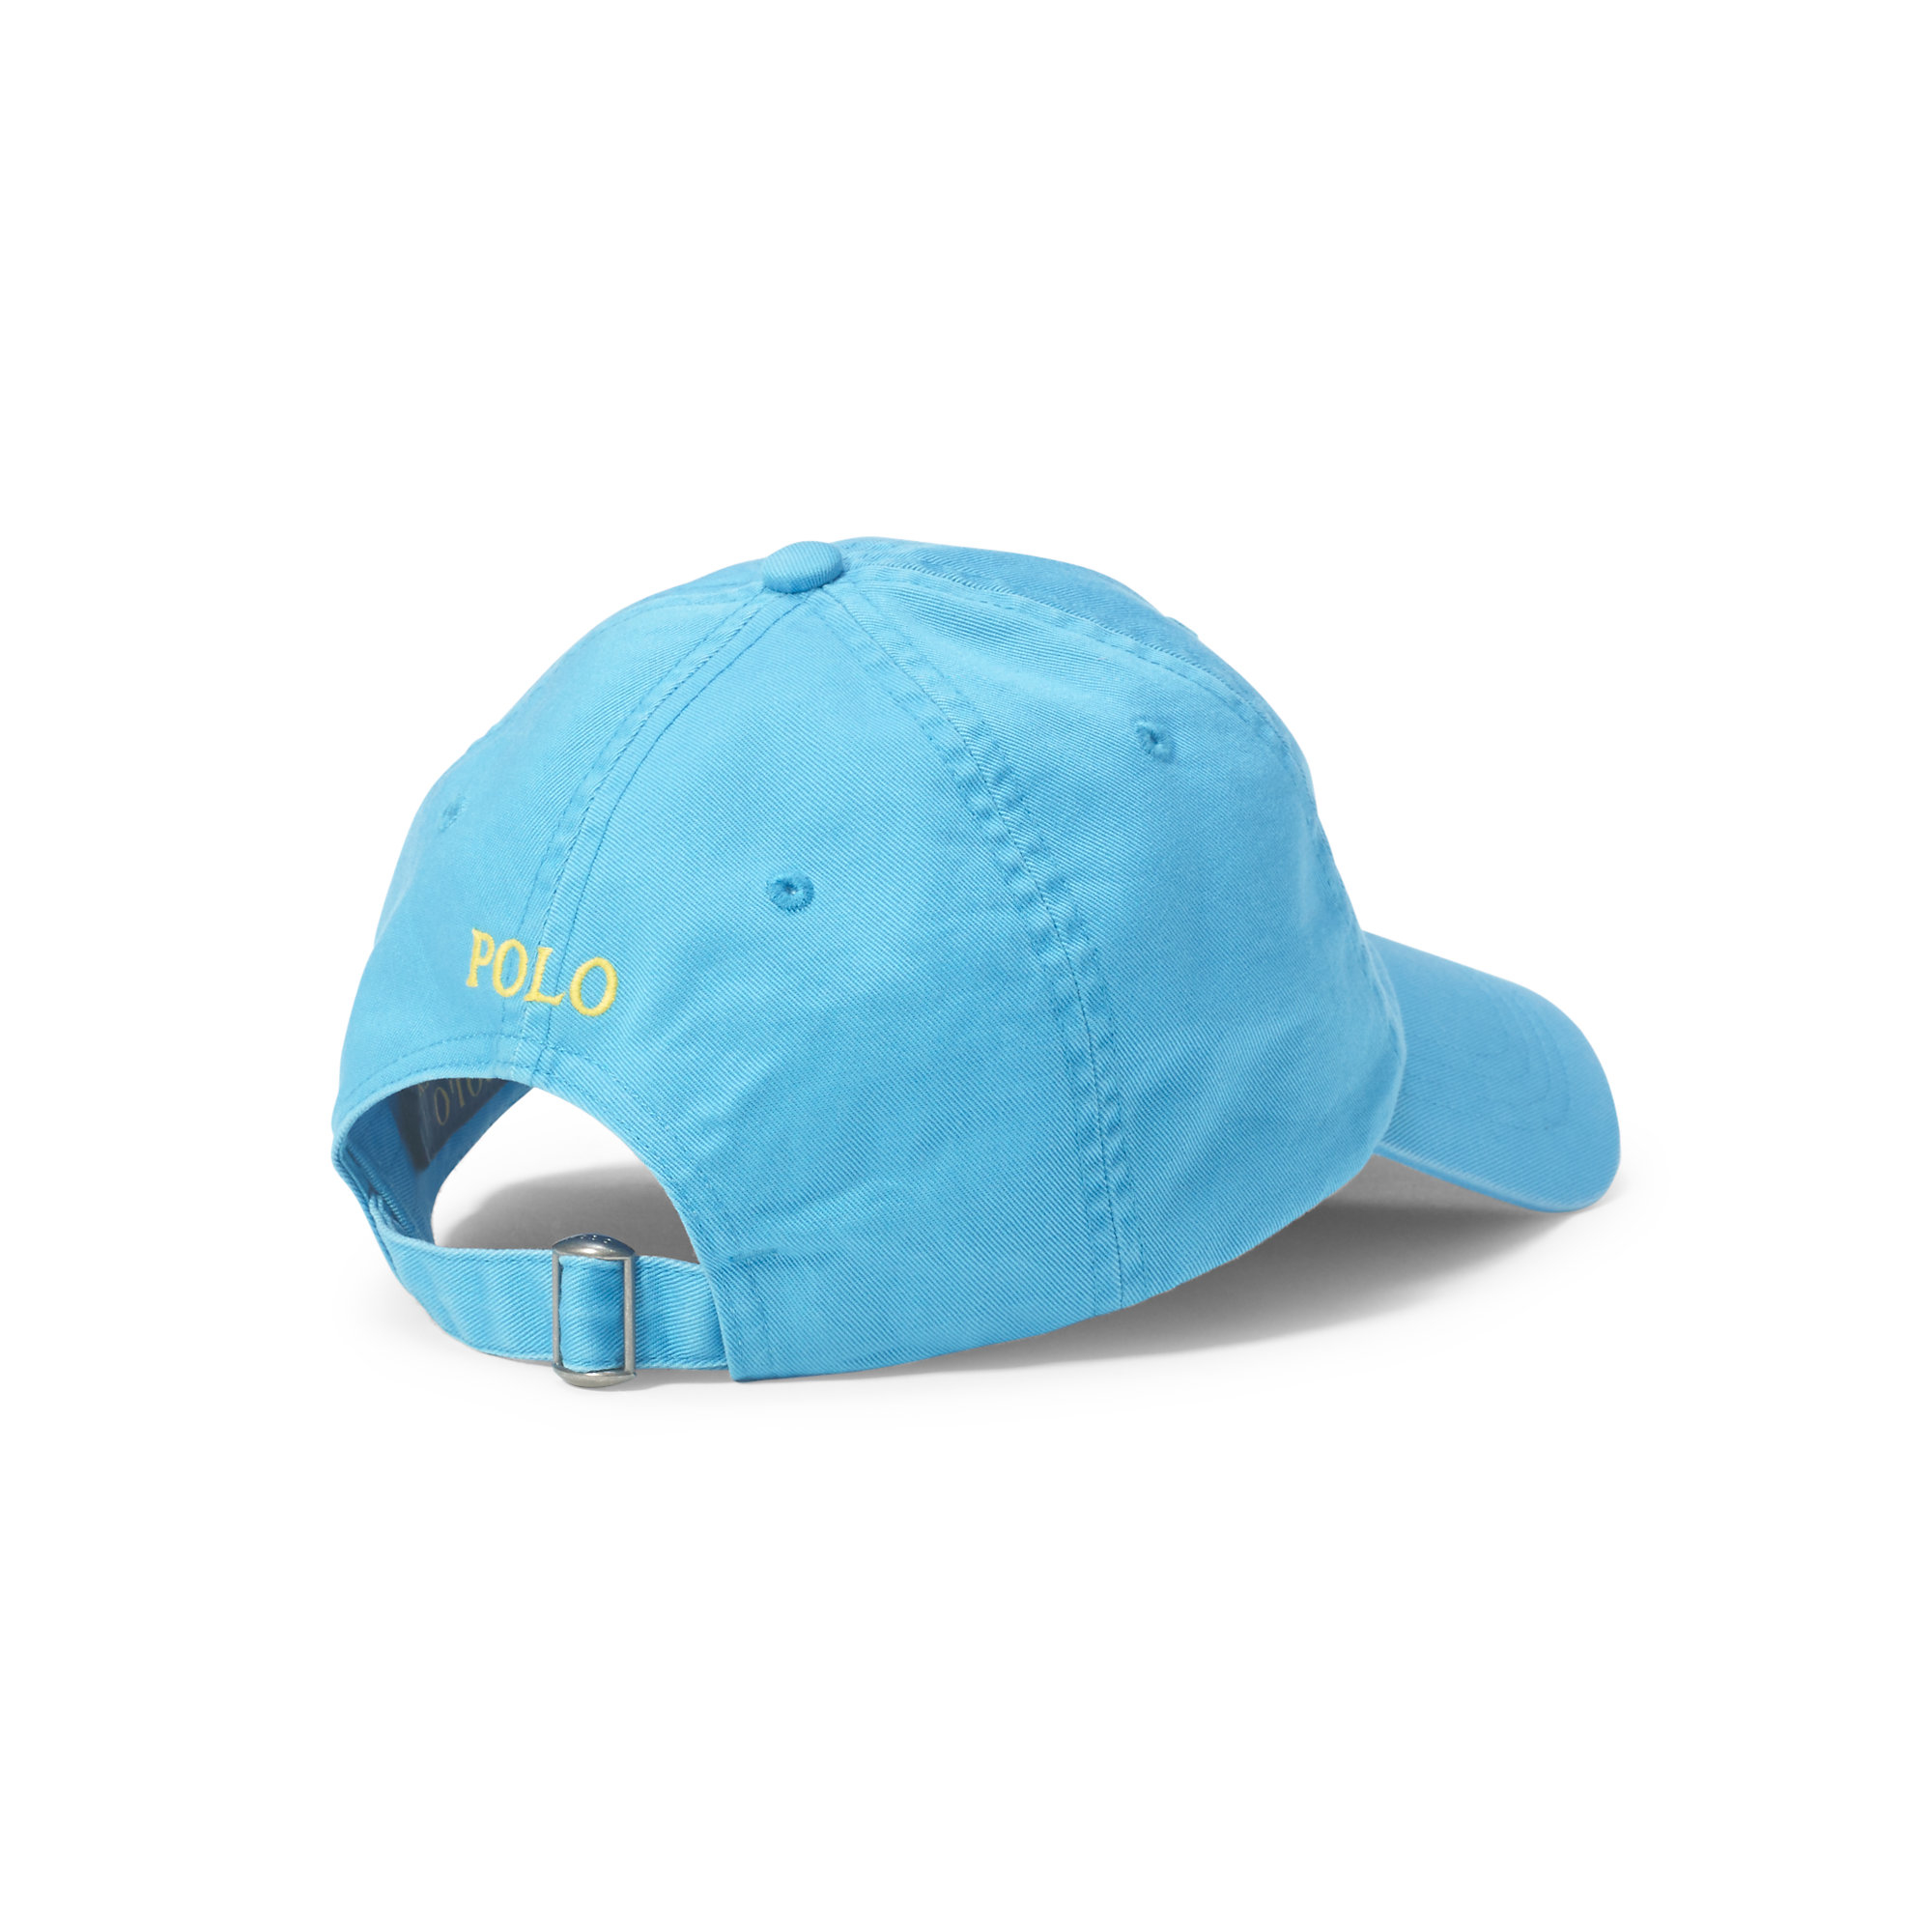 61dd4ab500be Lyst - Polo Ralph Lauren Cotton Chino Baseball Cap in Blue for Men